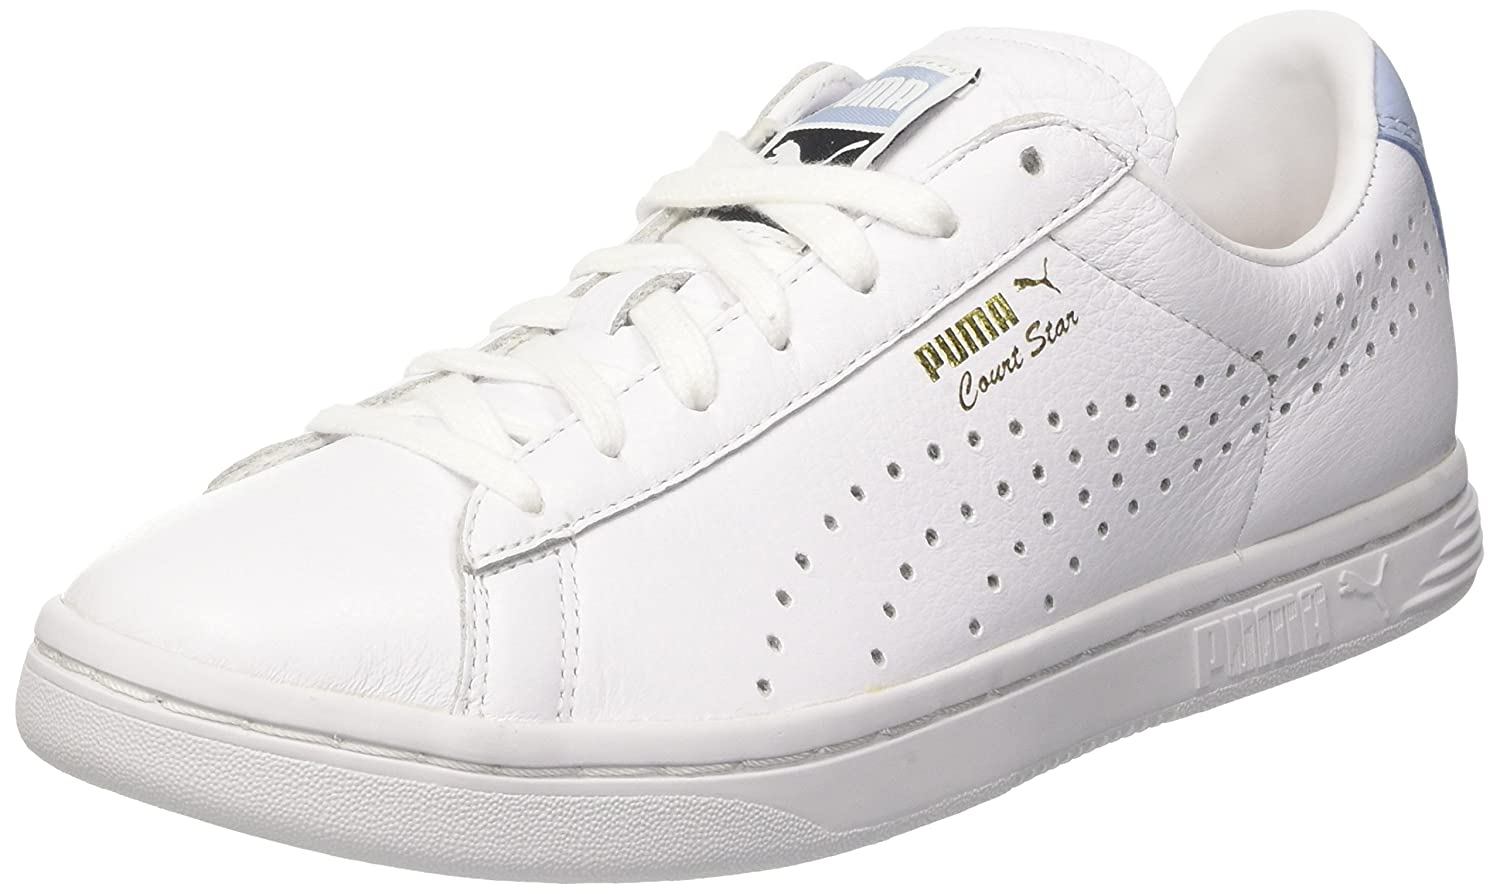 Puma Court Star Nm, Baskets Basses Mixte Adulte, Noir (Black/Black), 46 EU